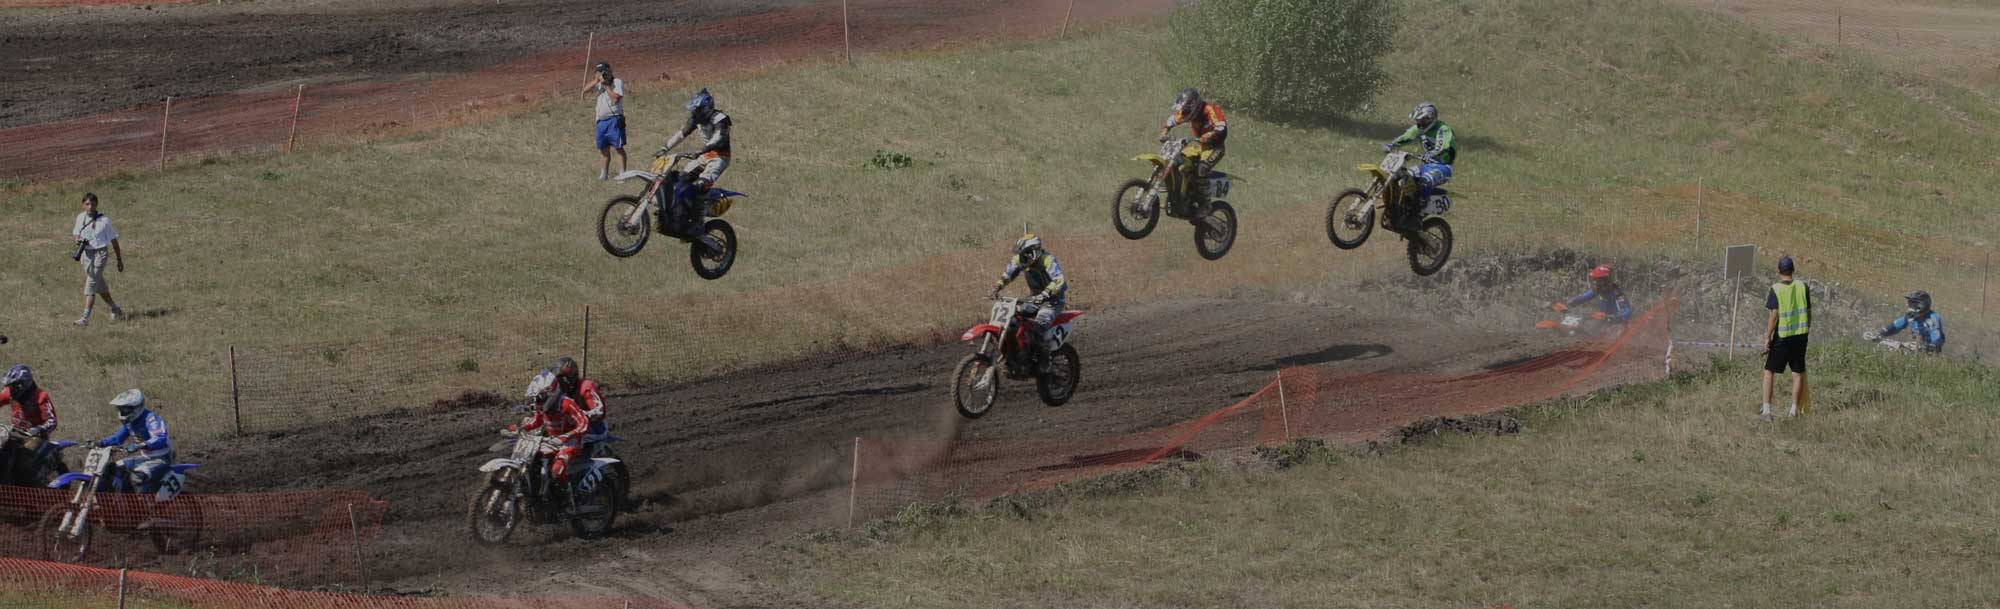 motocross bike race